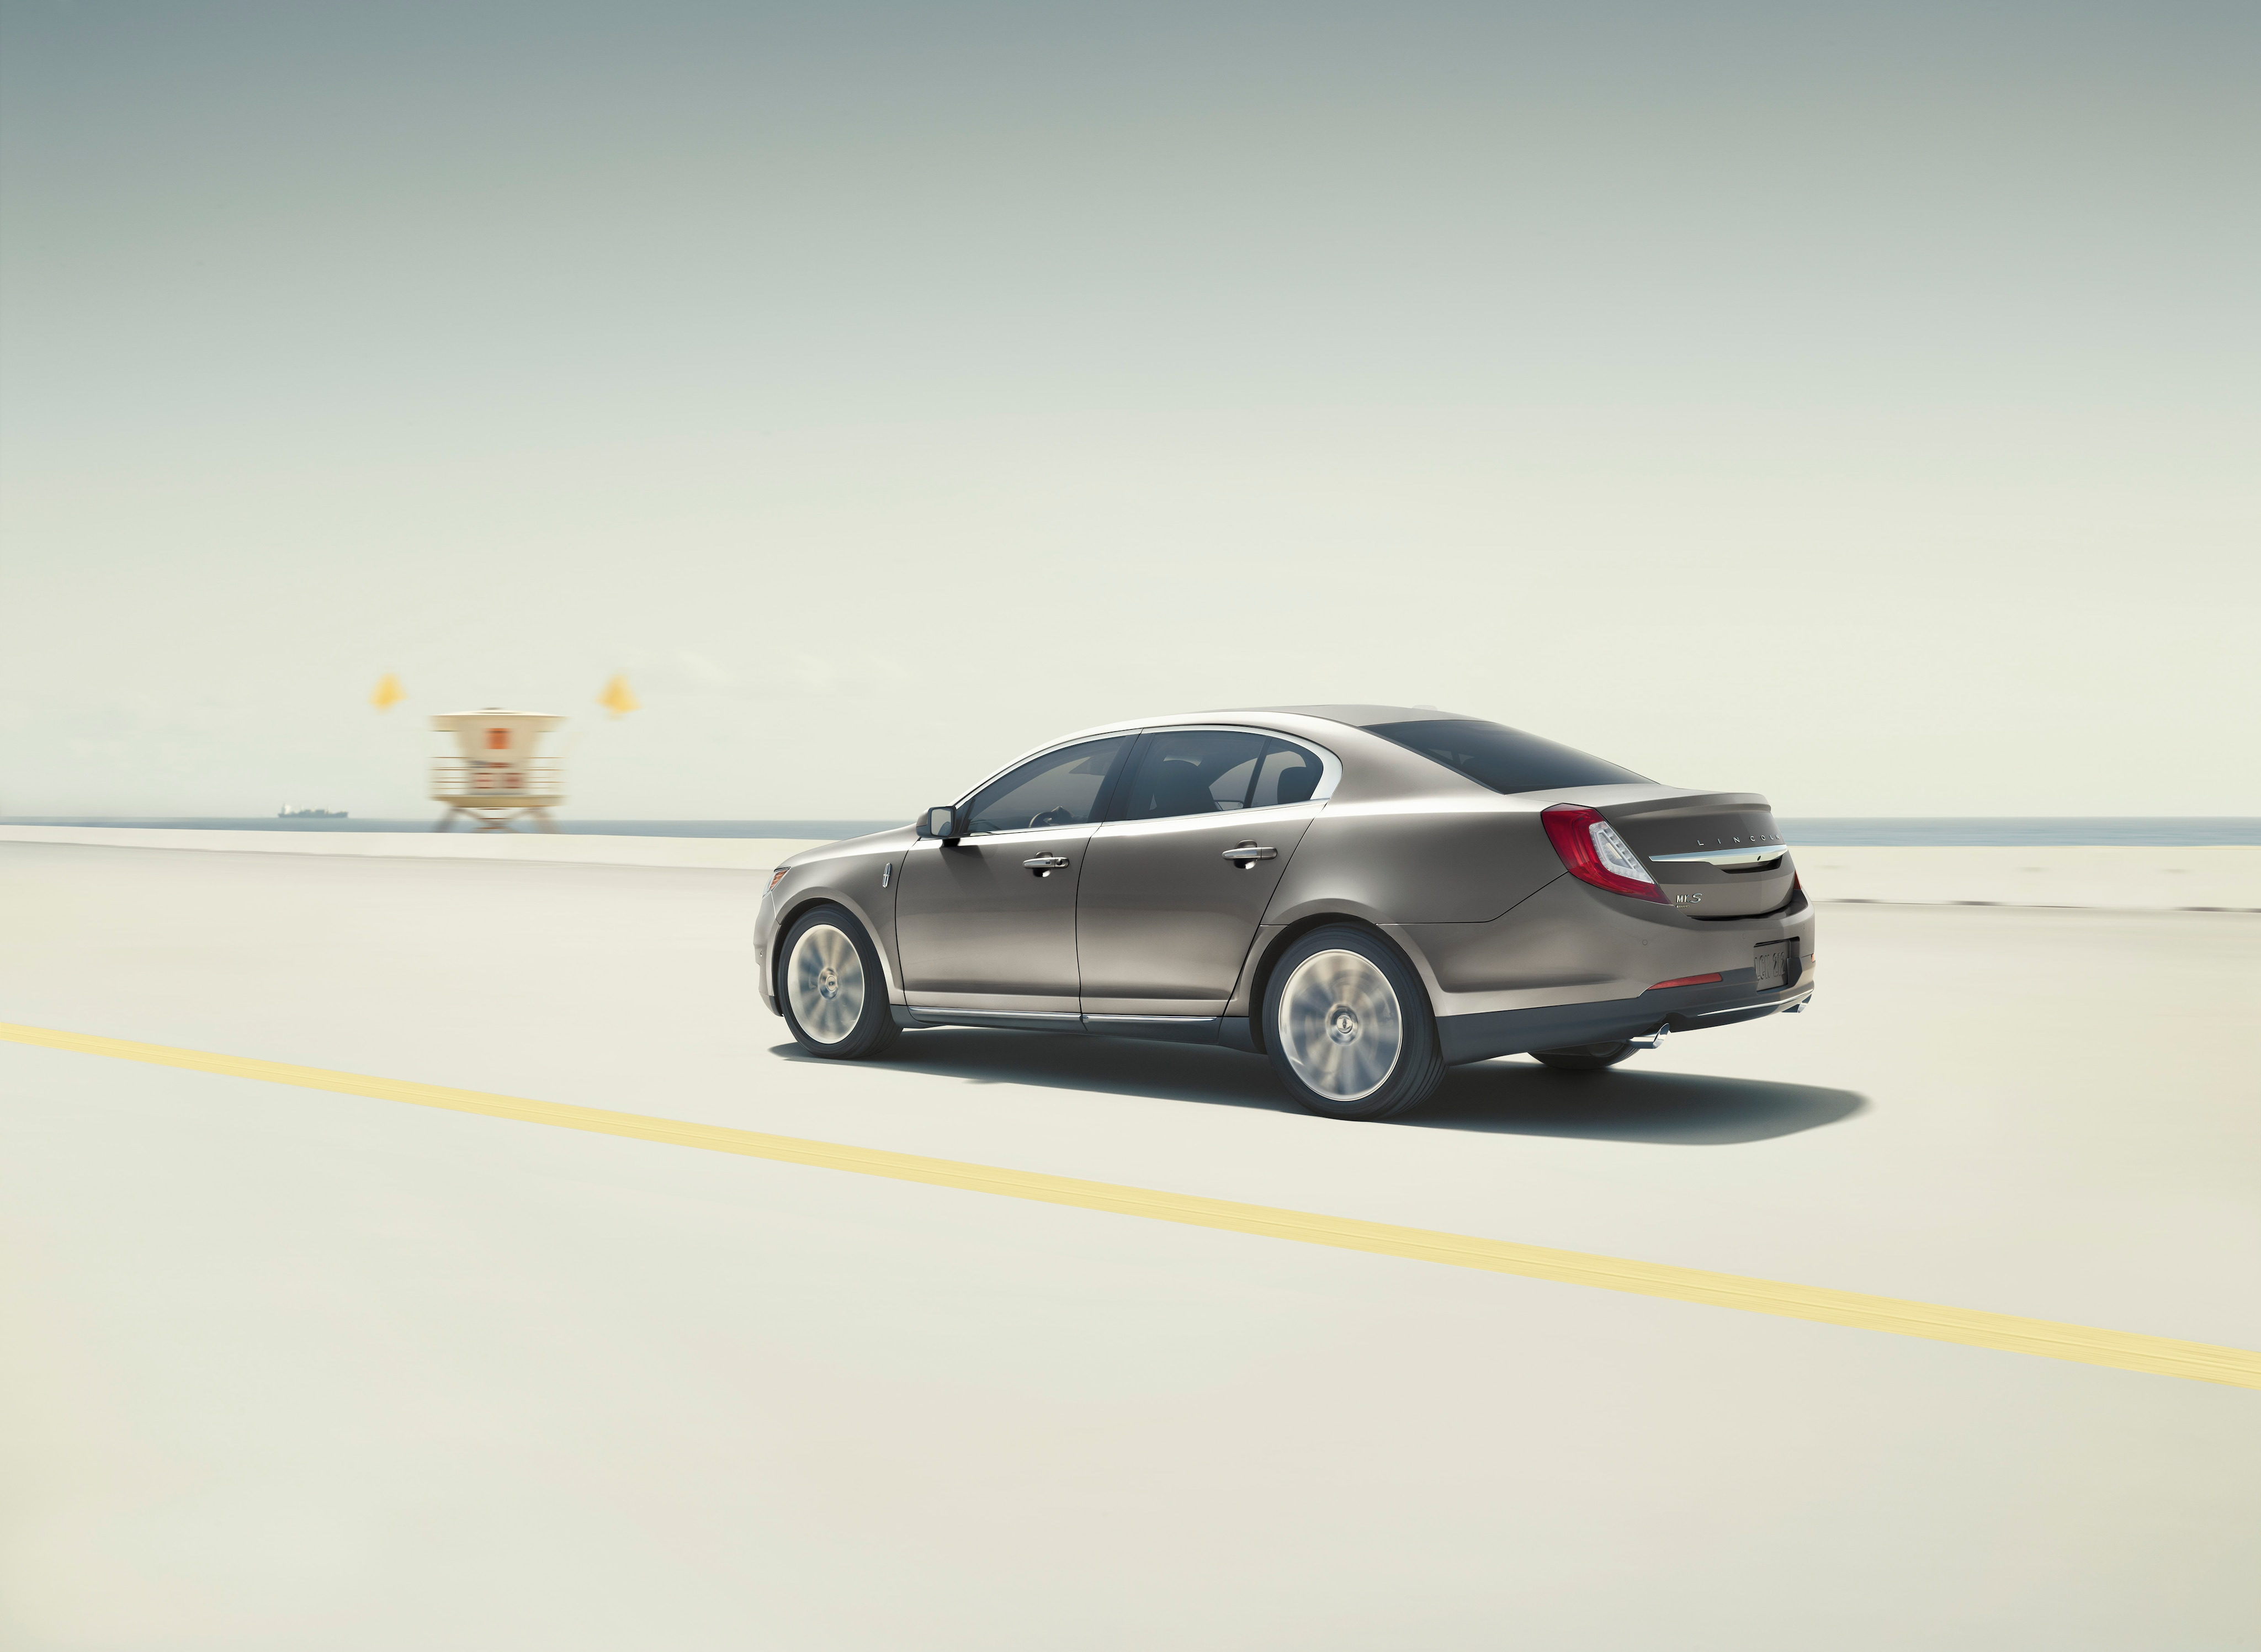 viewmore hr content lna en section image media relatedmedia mks nov cars lincolnmedia mkz jcr lincoln parsys us products